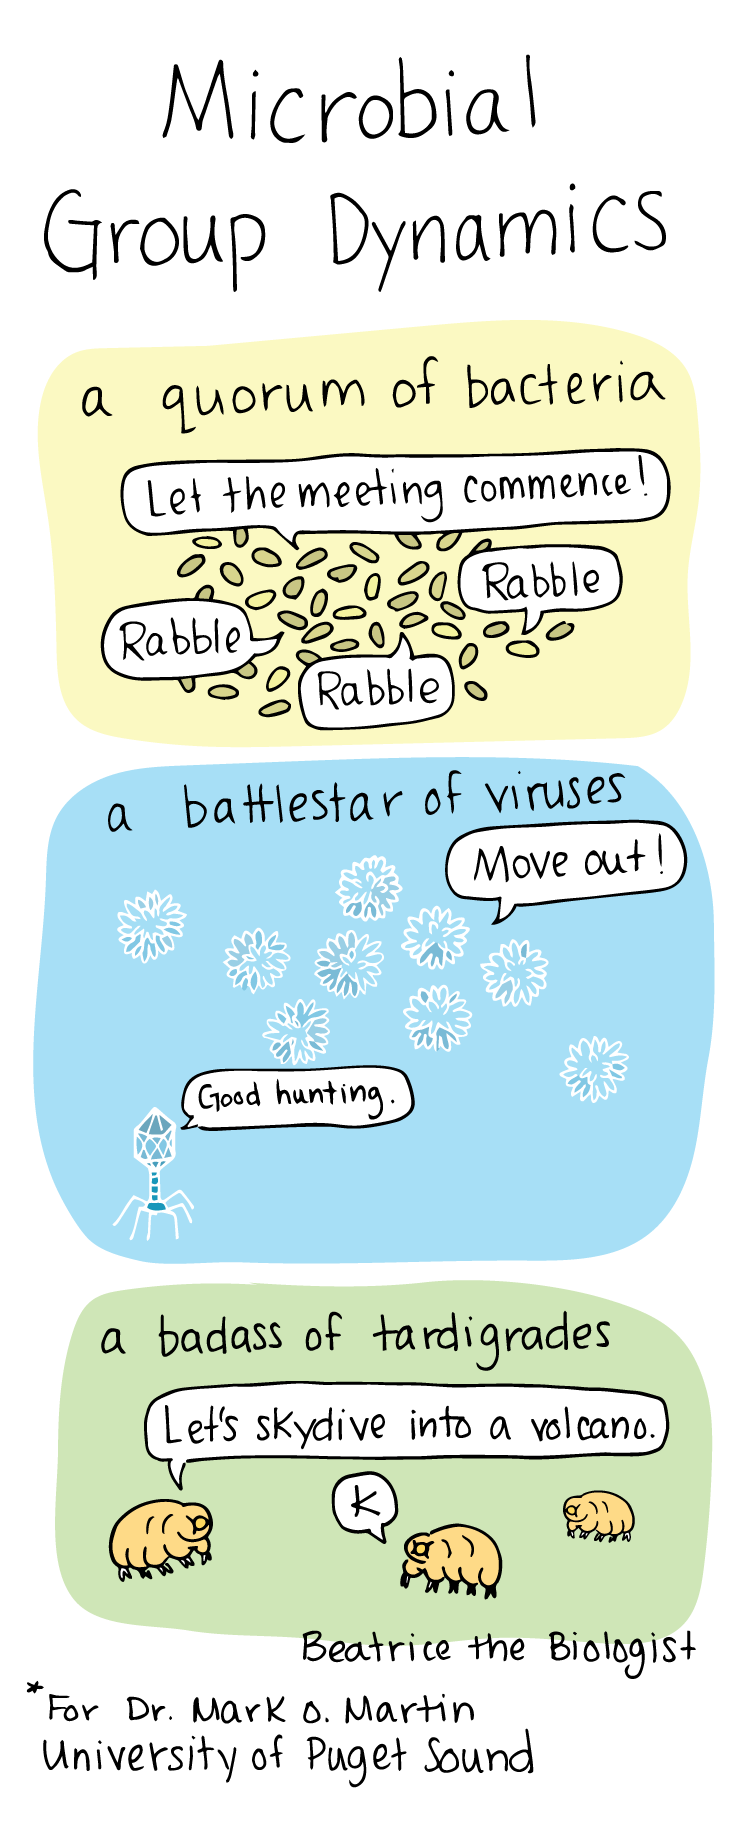 Microbial Group Dynamics | Infection | Science humor, Science jokes